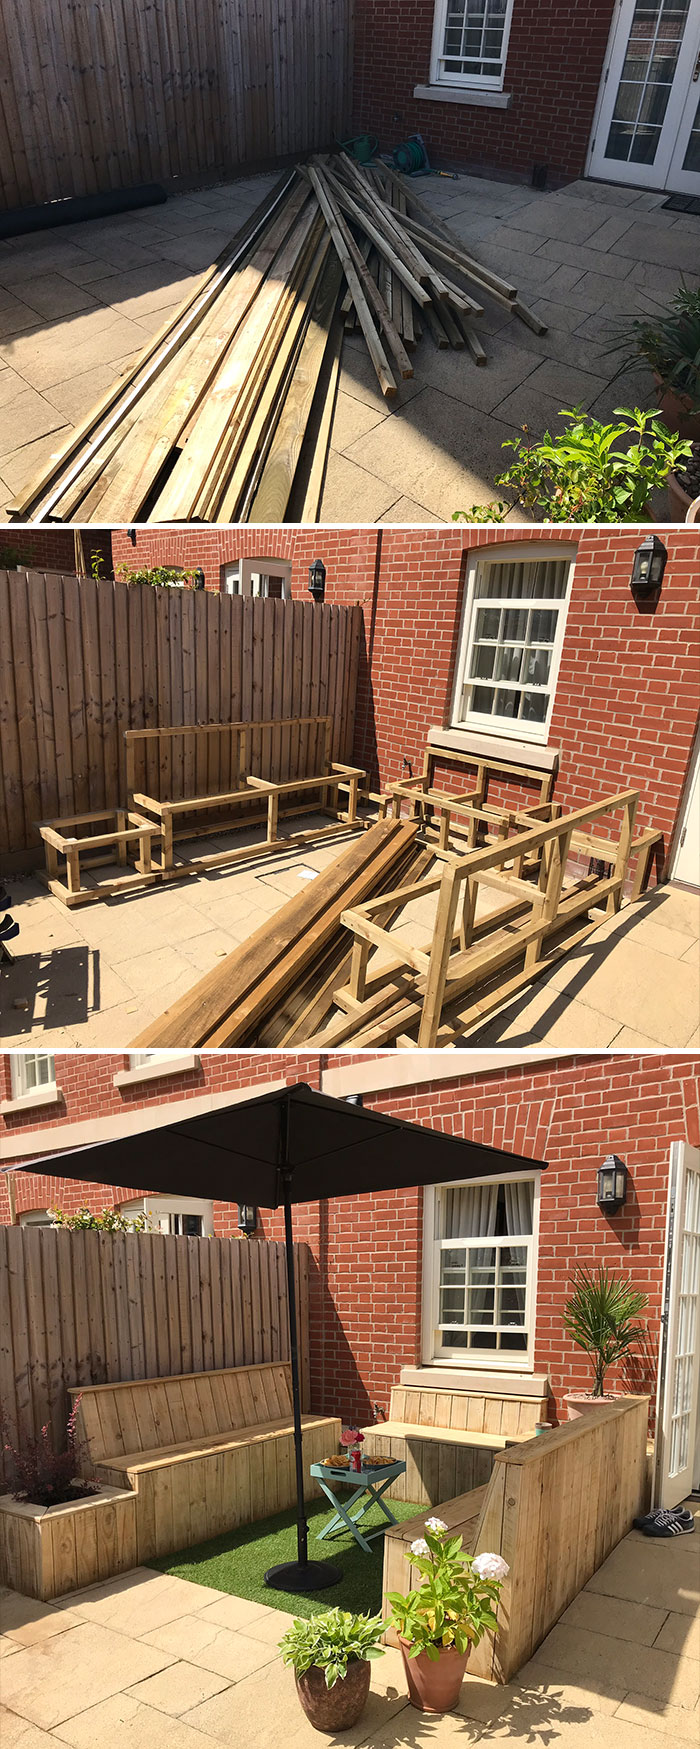 That's Right! It's Another Lockdown Patio Project! I Built A Set Of Benches For Our Small Courtyard Patio